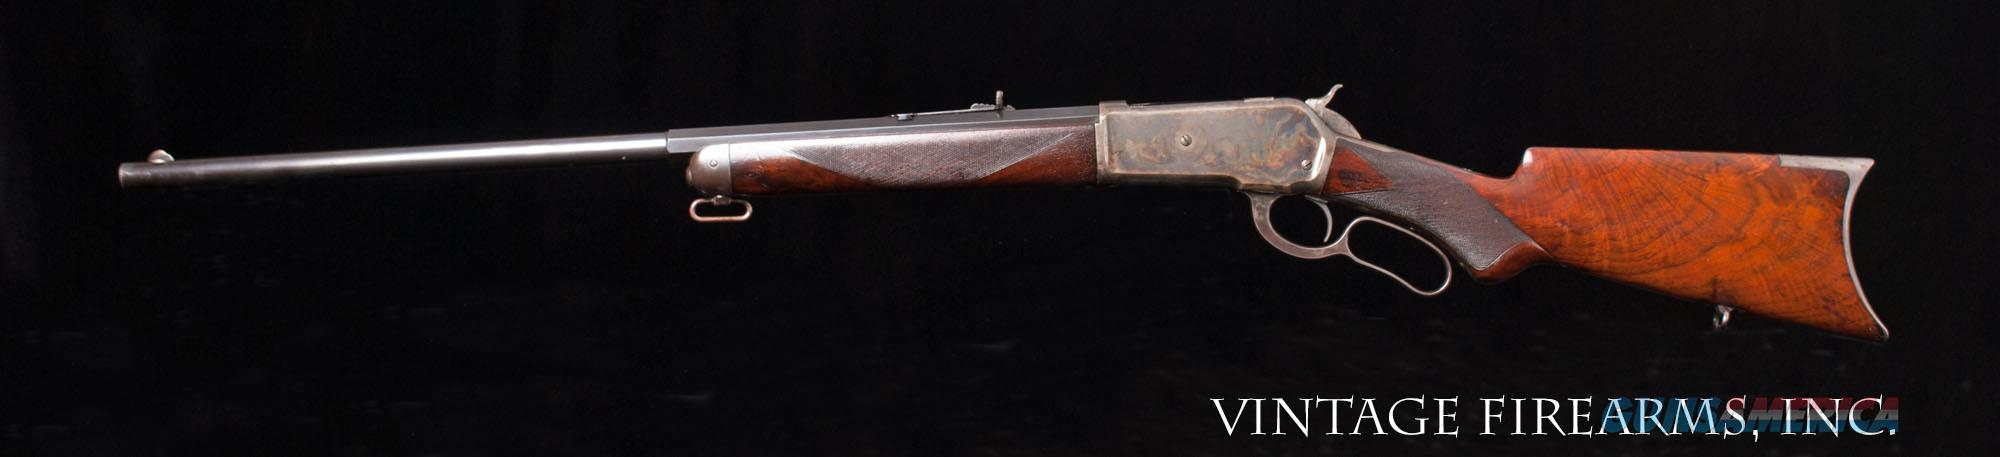 Winchester 1886 Deluxe Rifle-ADDED INFO, NEW PRICE 45-90, DOCUMENTED, 95% FACTORY COLORS   Guns > Rifles > Winchester Rifles - Pre-1899 Lever